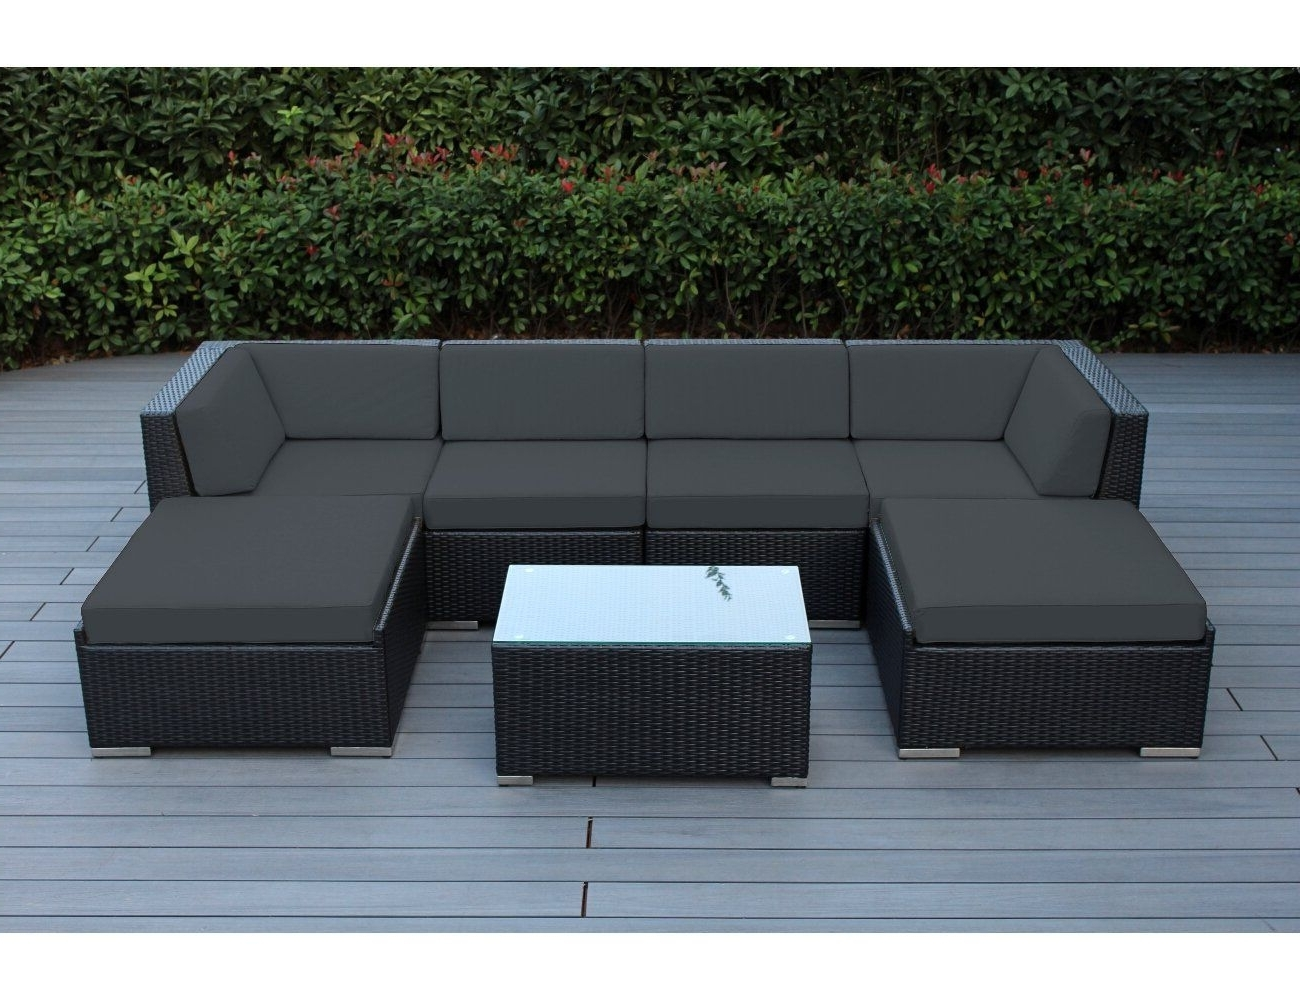 Widely Used Patio Conversation Sets With Covers Intended For Ohana 7 Piece Outdoor Patio Furniture Sectional Conversation Set (View 16 of 20)